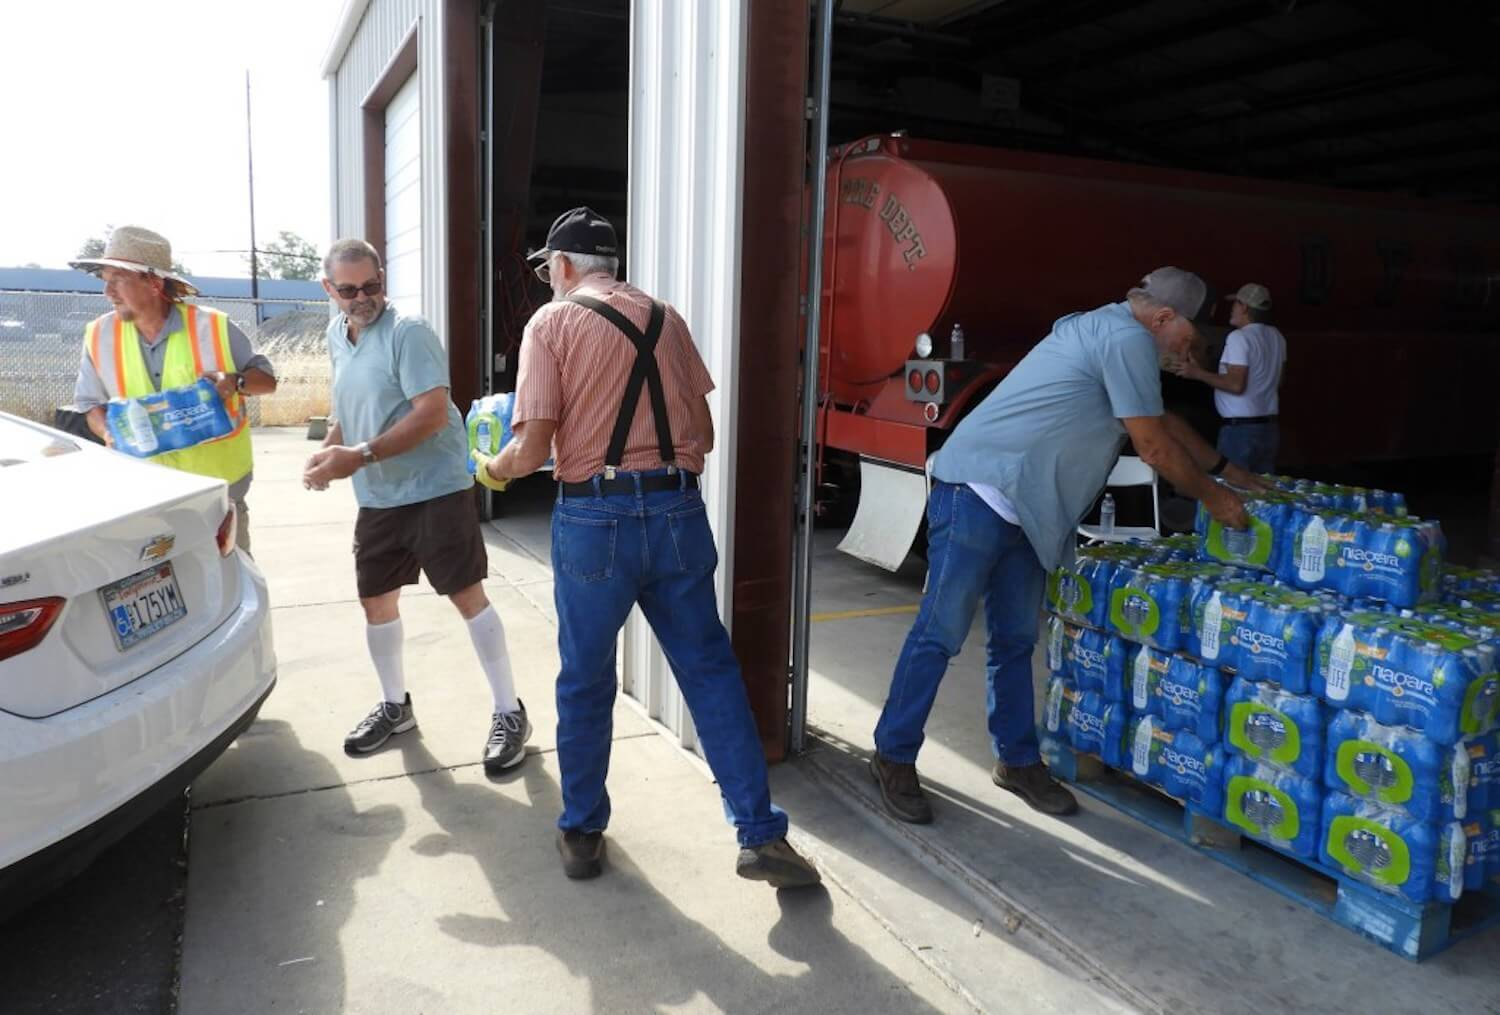 Volunteers at the Orland Fire Department in Glenn County distribute bottled water to people with dry wells on July 28, 2021. August 2021